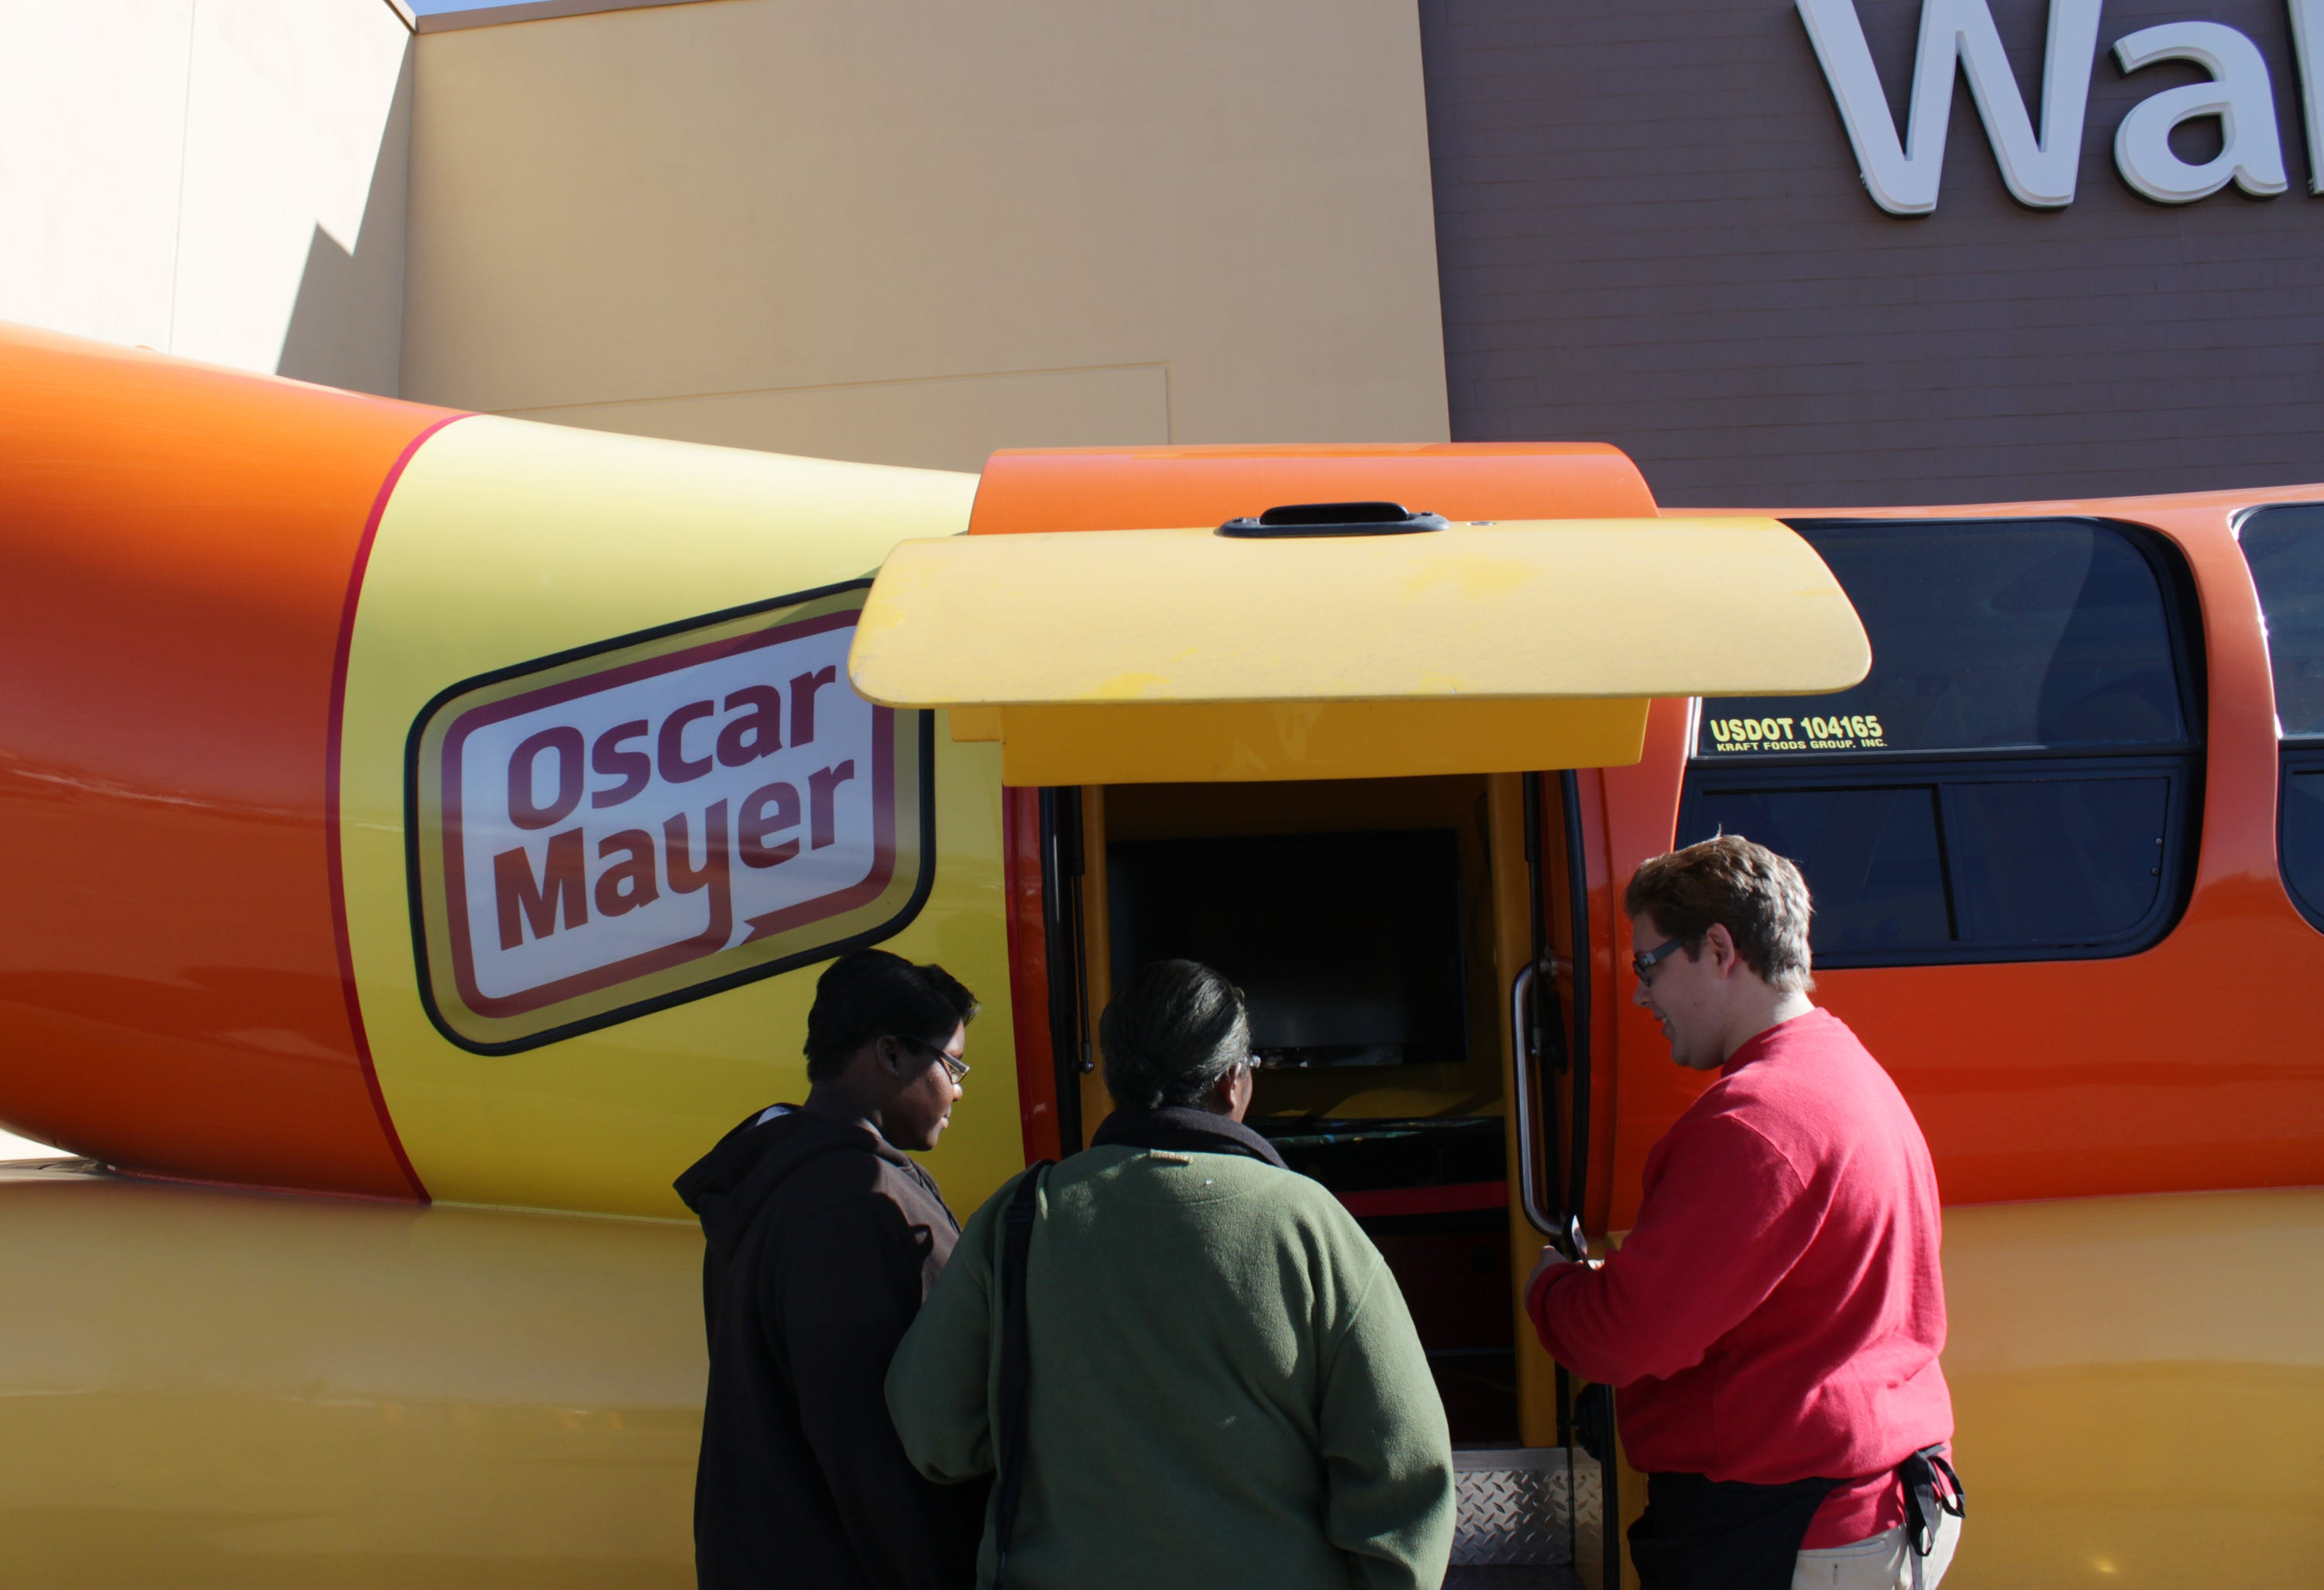 10 Flavorful Facts About the Wienermobile | Mental Floss